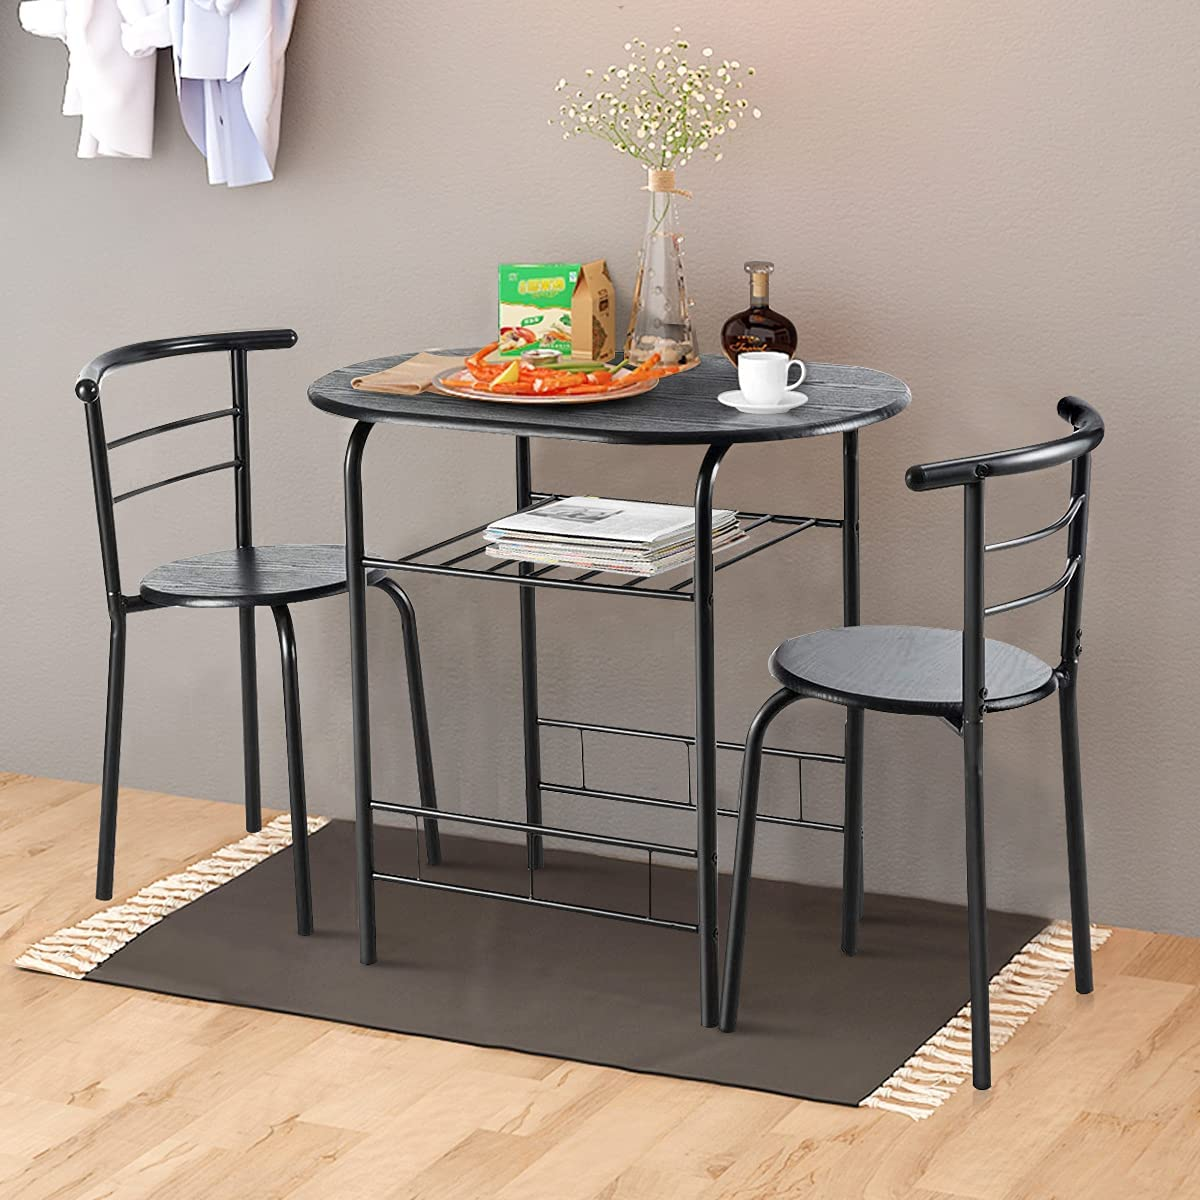 Buy Nafort 9 Piece Round Dining Table Set for 9, Compact Table ...